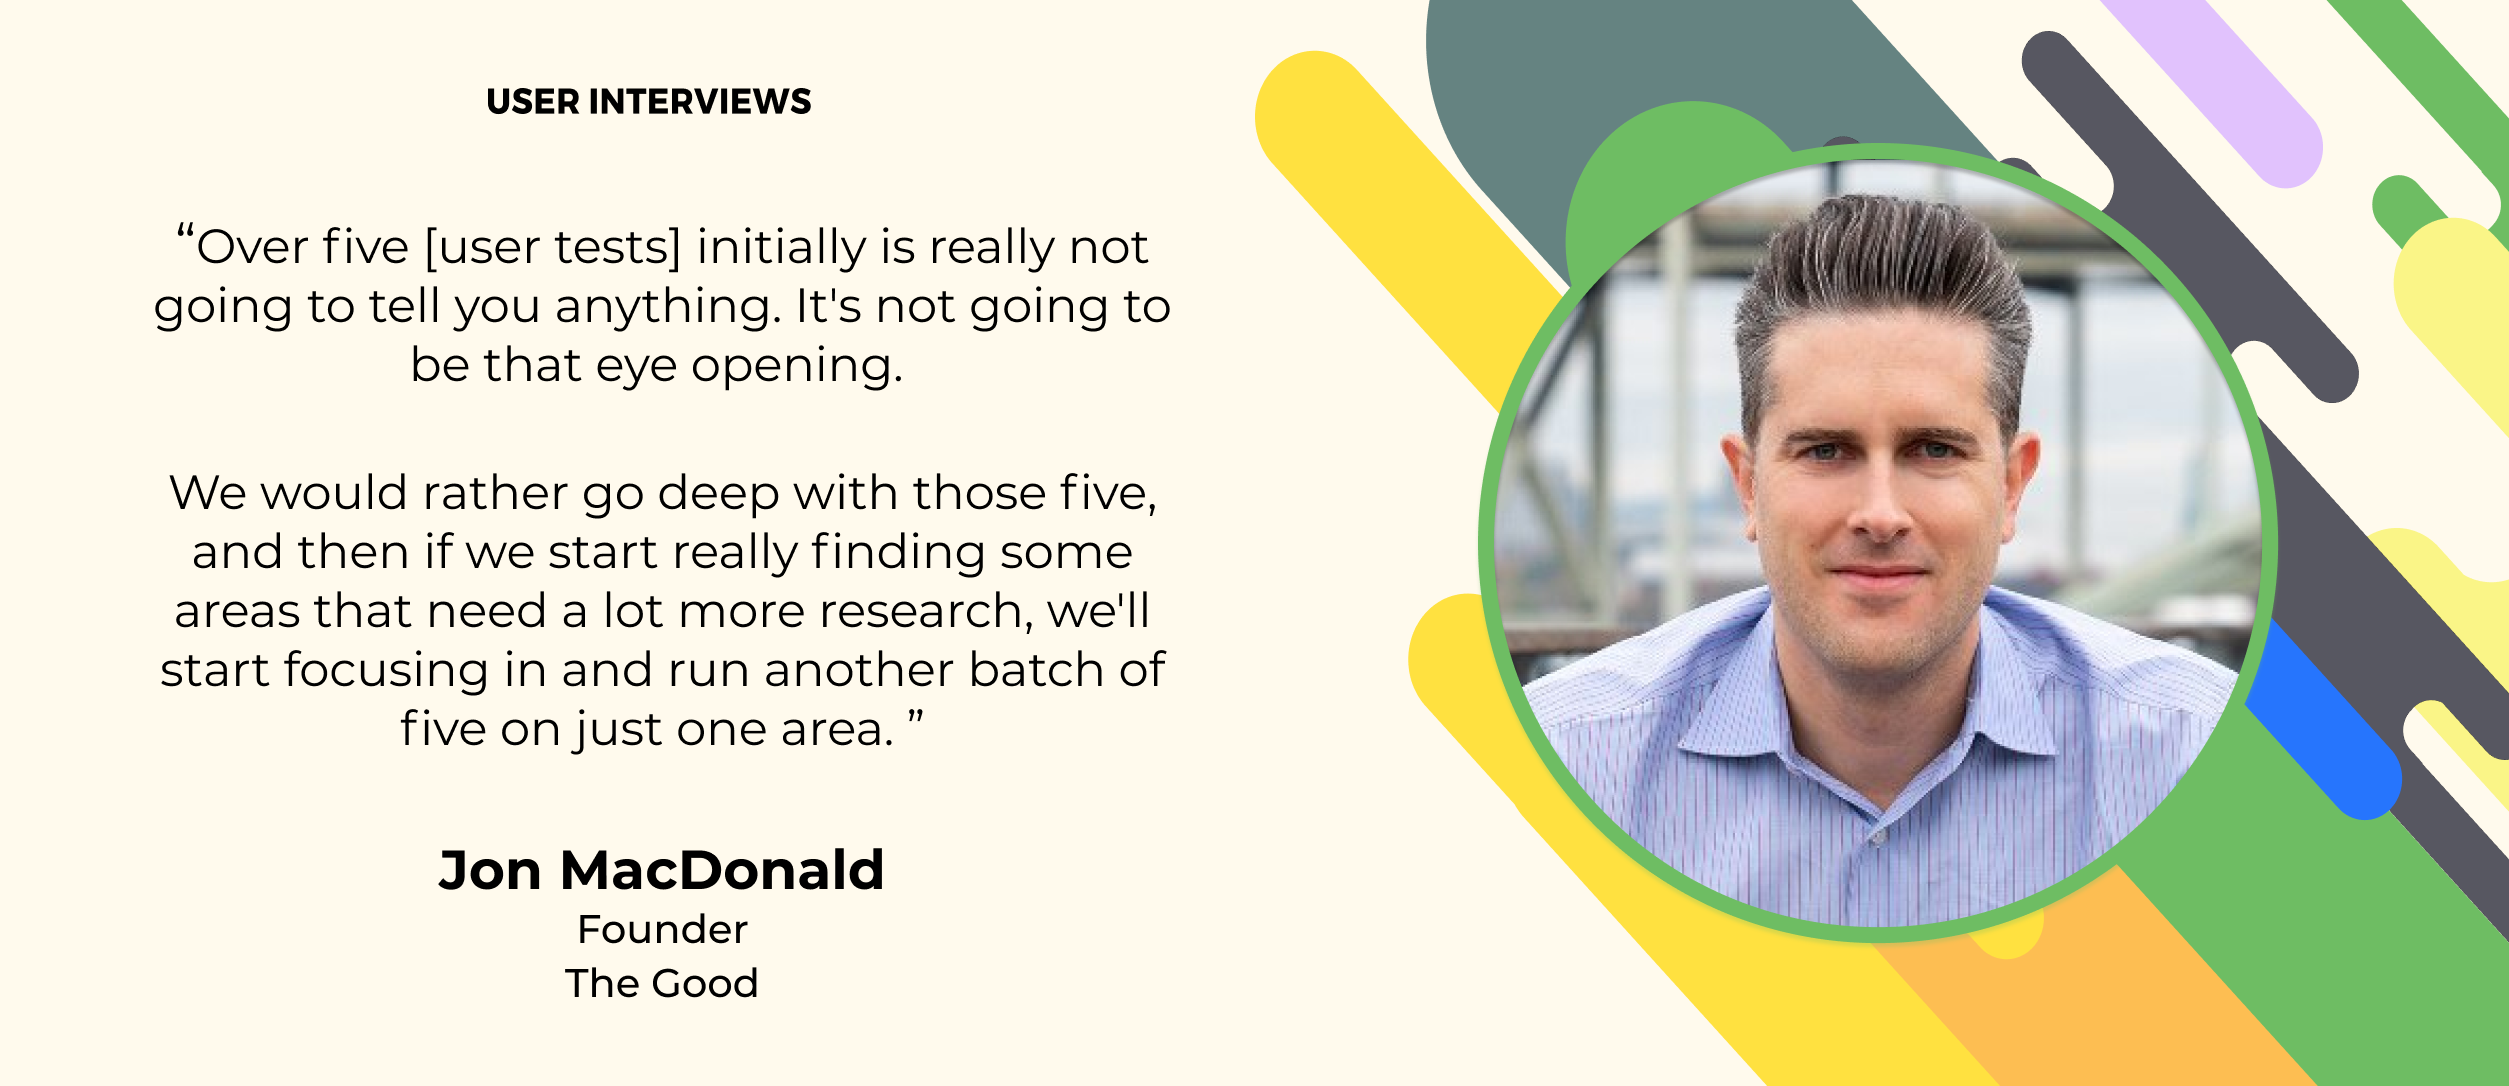 user research quote from jon macdonald, founder of the good